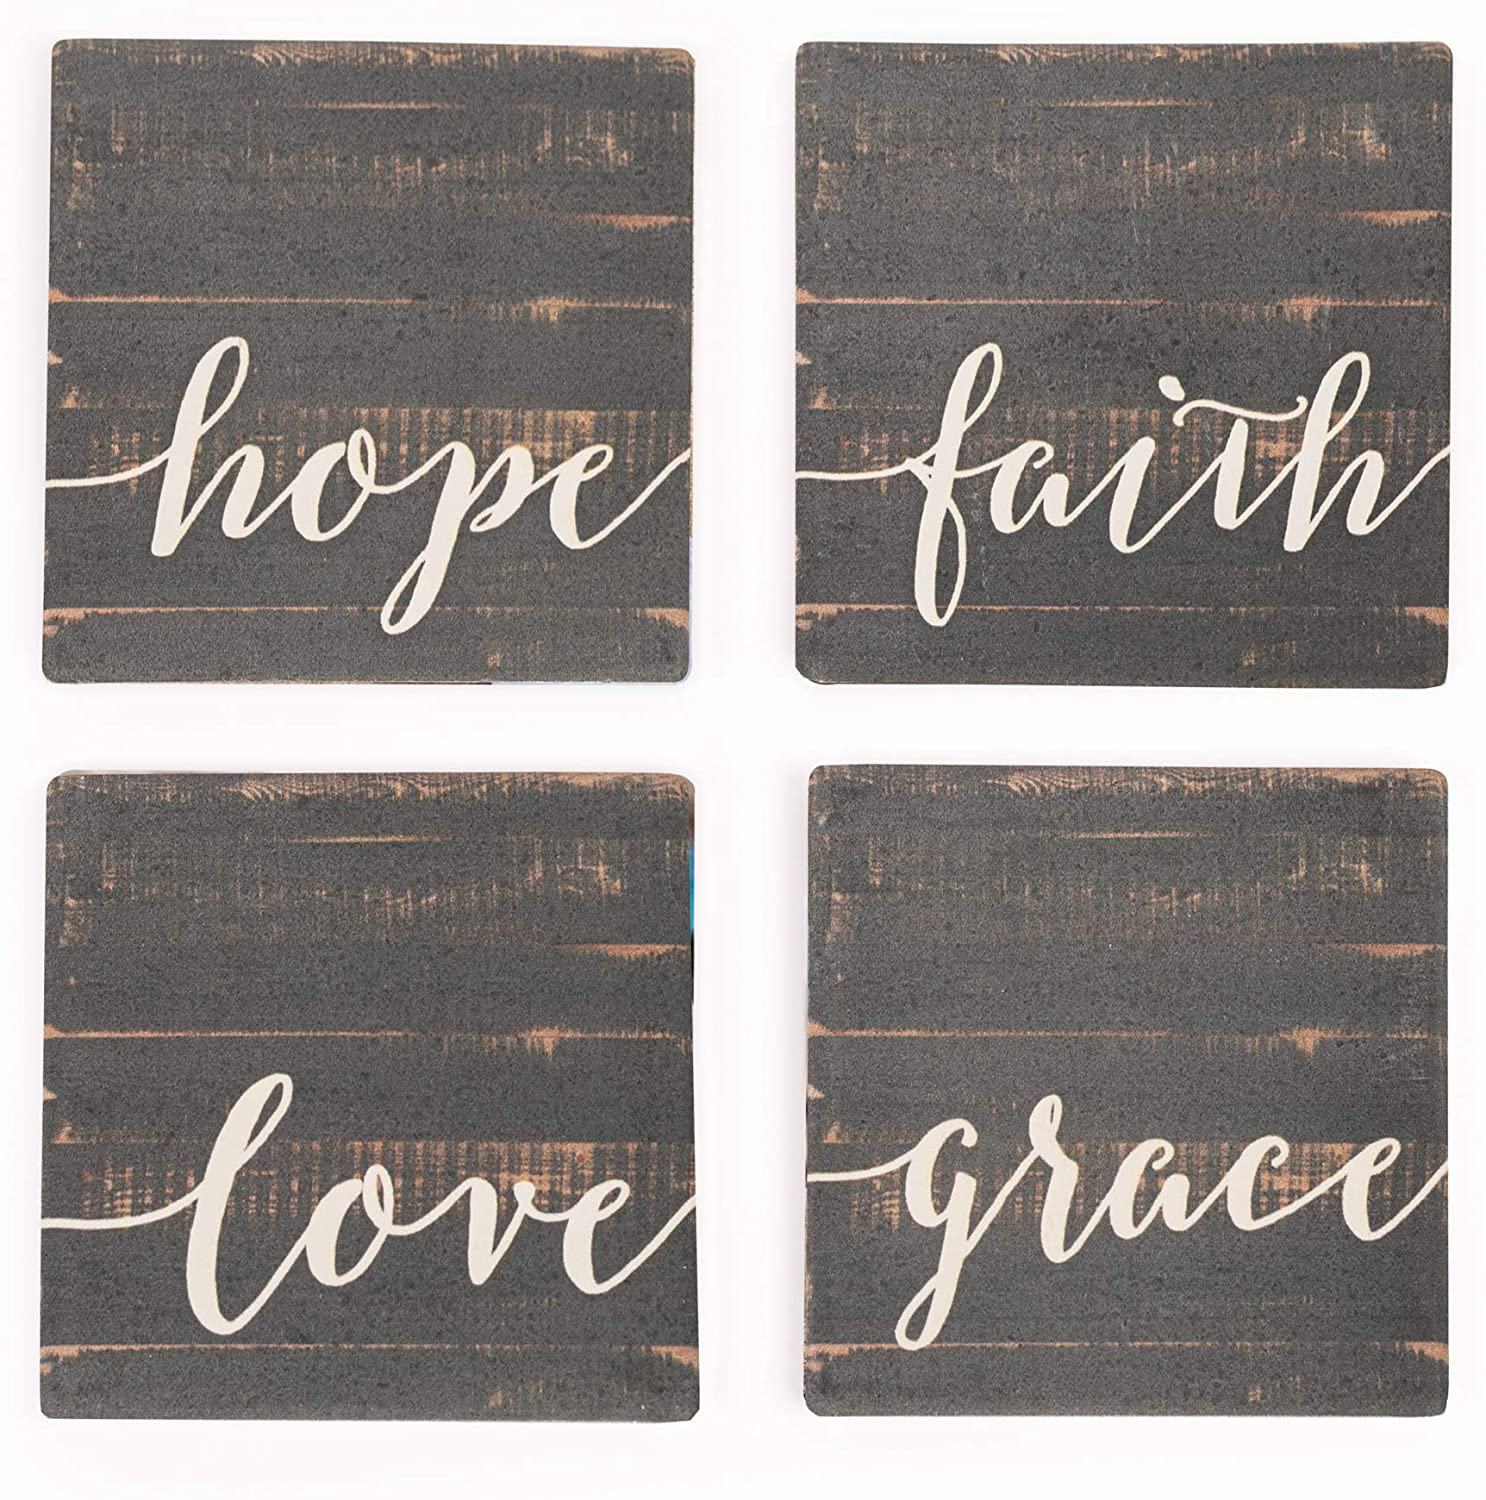 Love Faith Grace Hope Distressed Wood Look 4 x 4 Absorbent Ceramic Coasters Set of 4